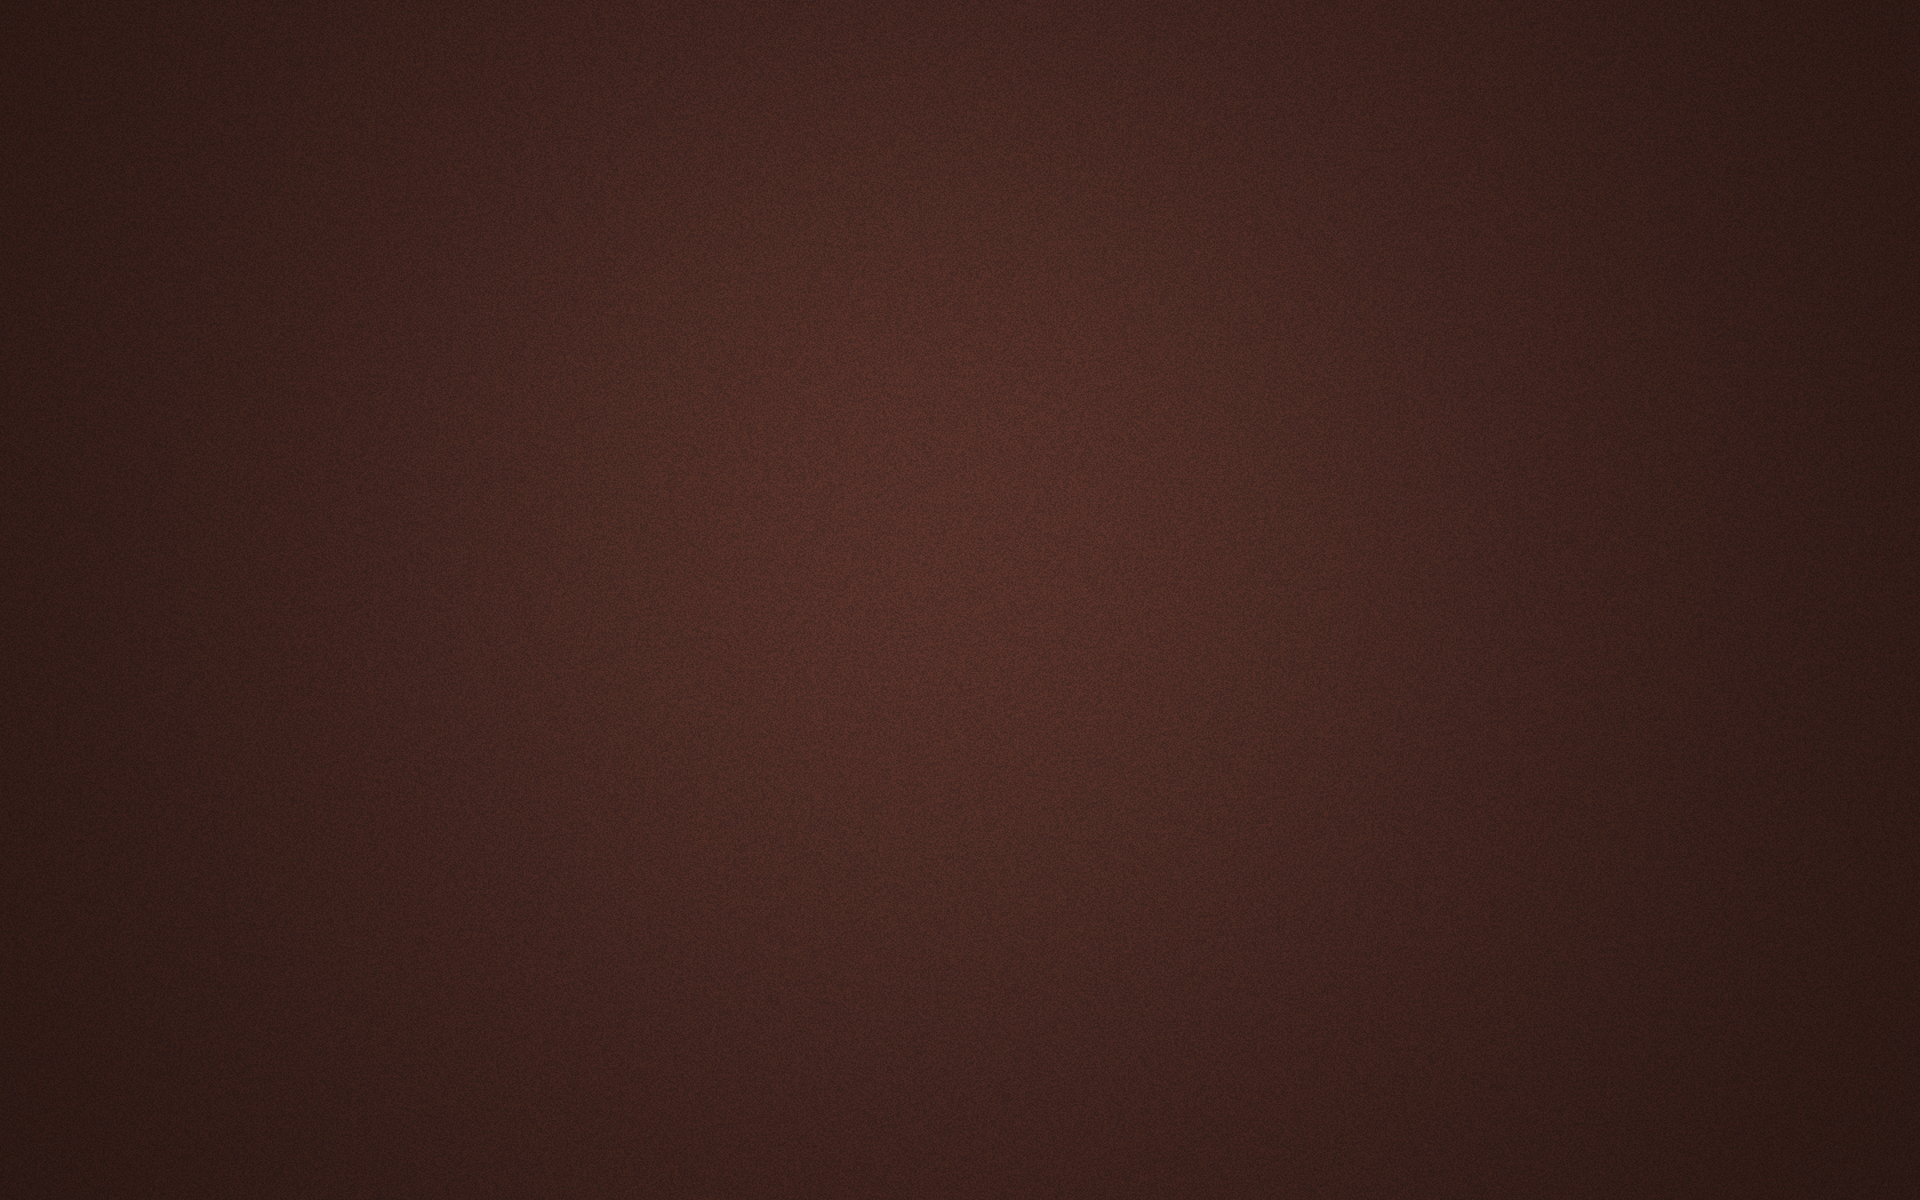 Coffee Color Wallpaper